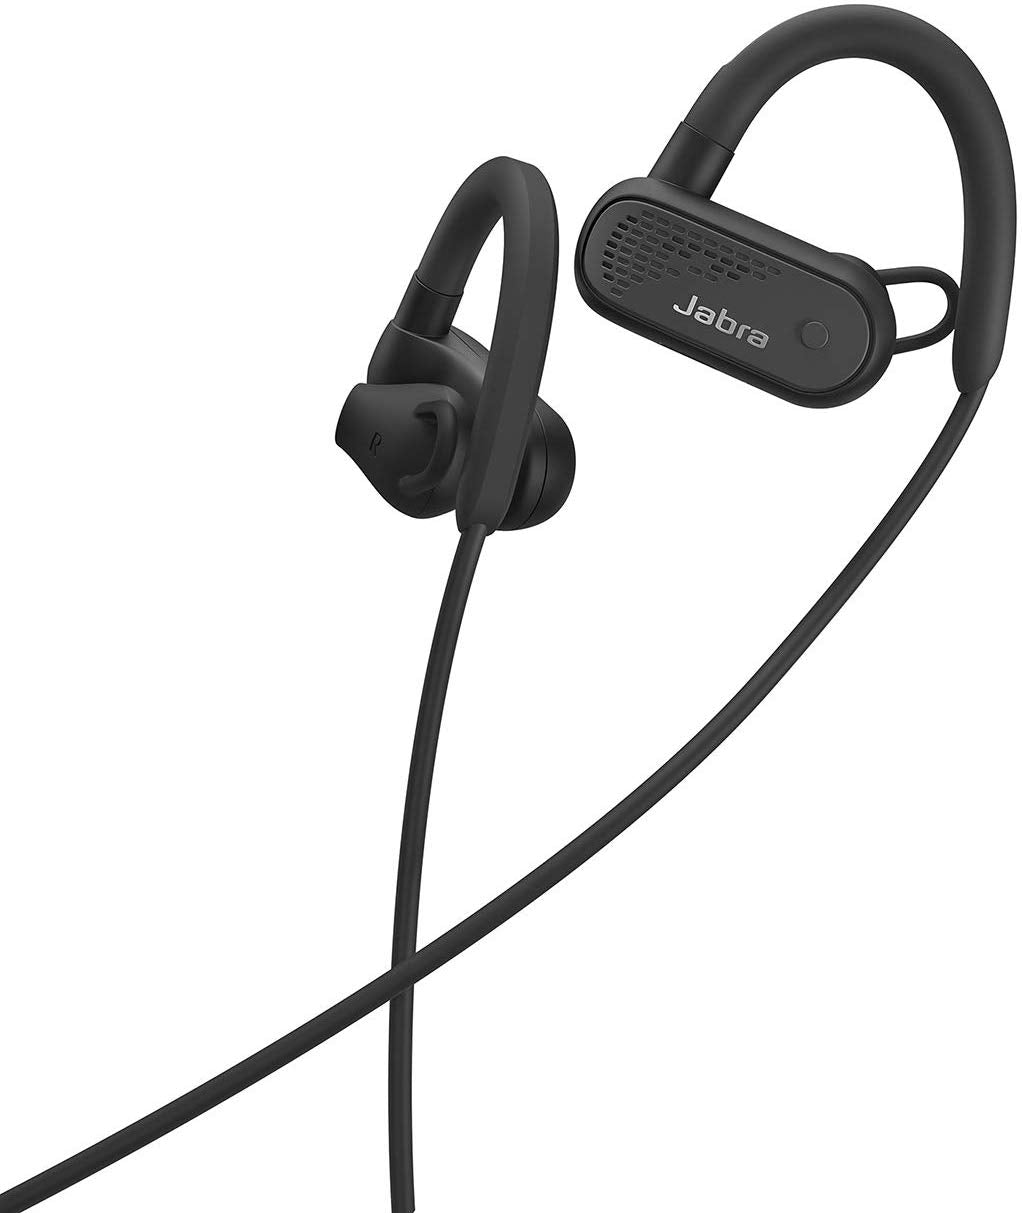 Jabra Elite Active 45e - Jaben - The Little Headphone Store